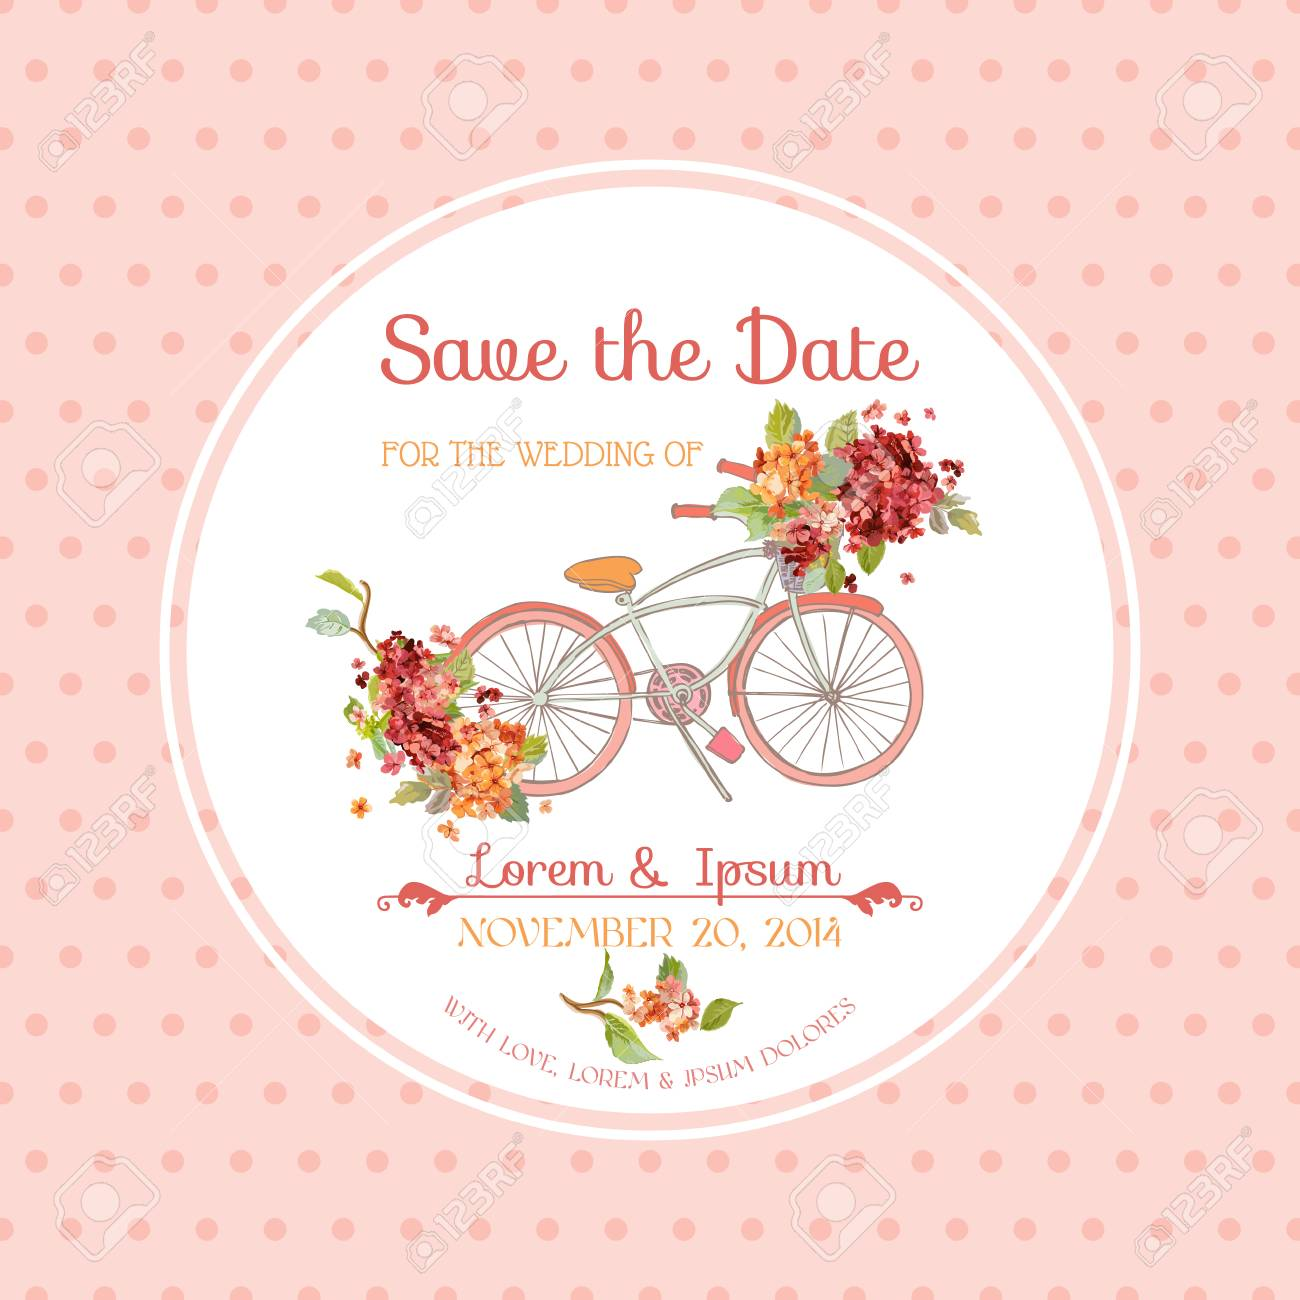 Invitation or Congratulation Card - for Wedding, Baby Shower - Vintage Hortensia Floral Theme - 64224051